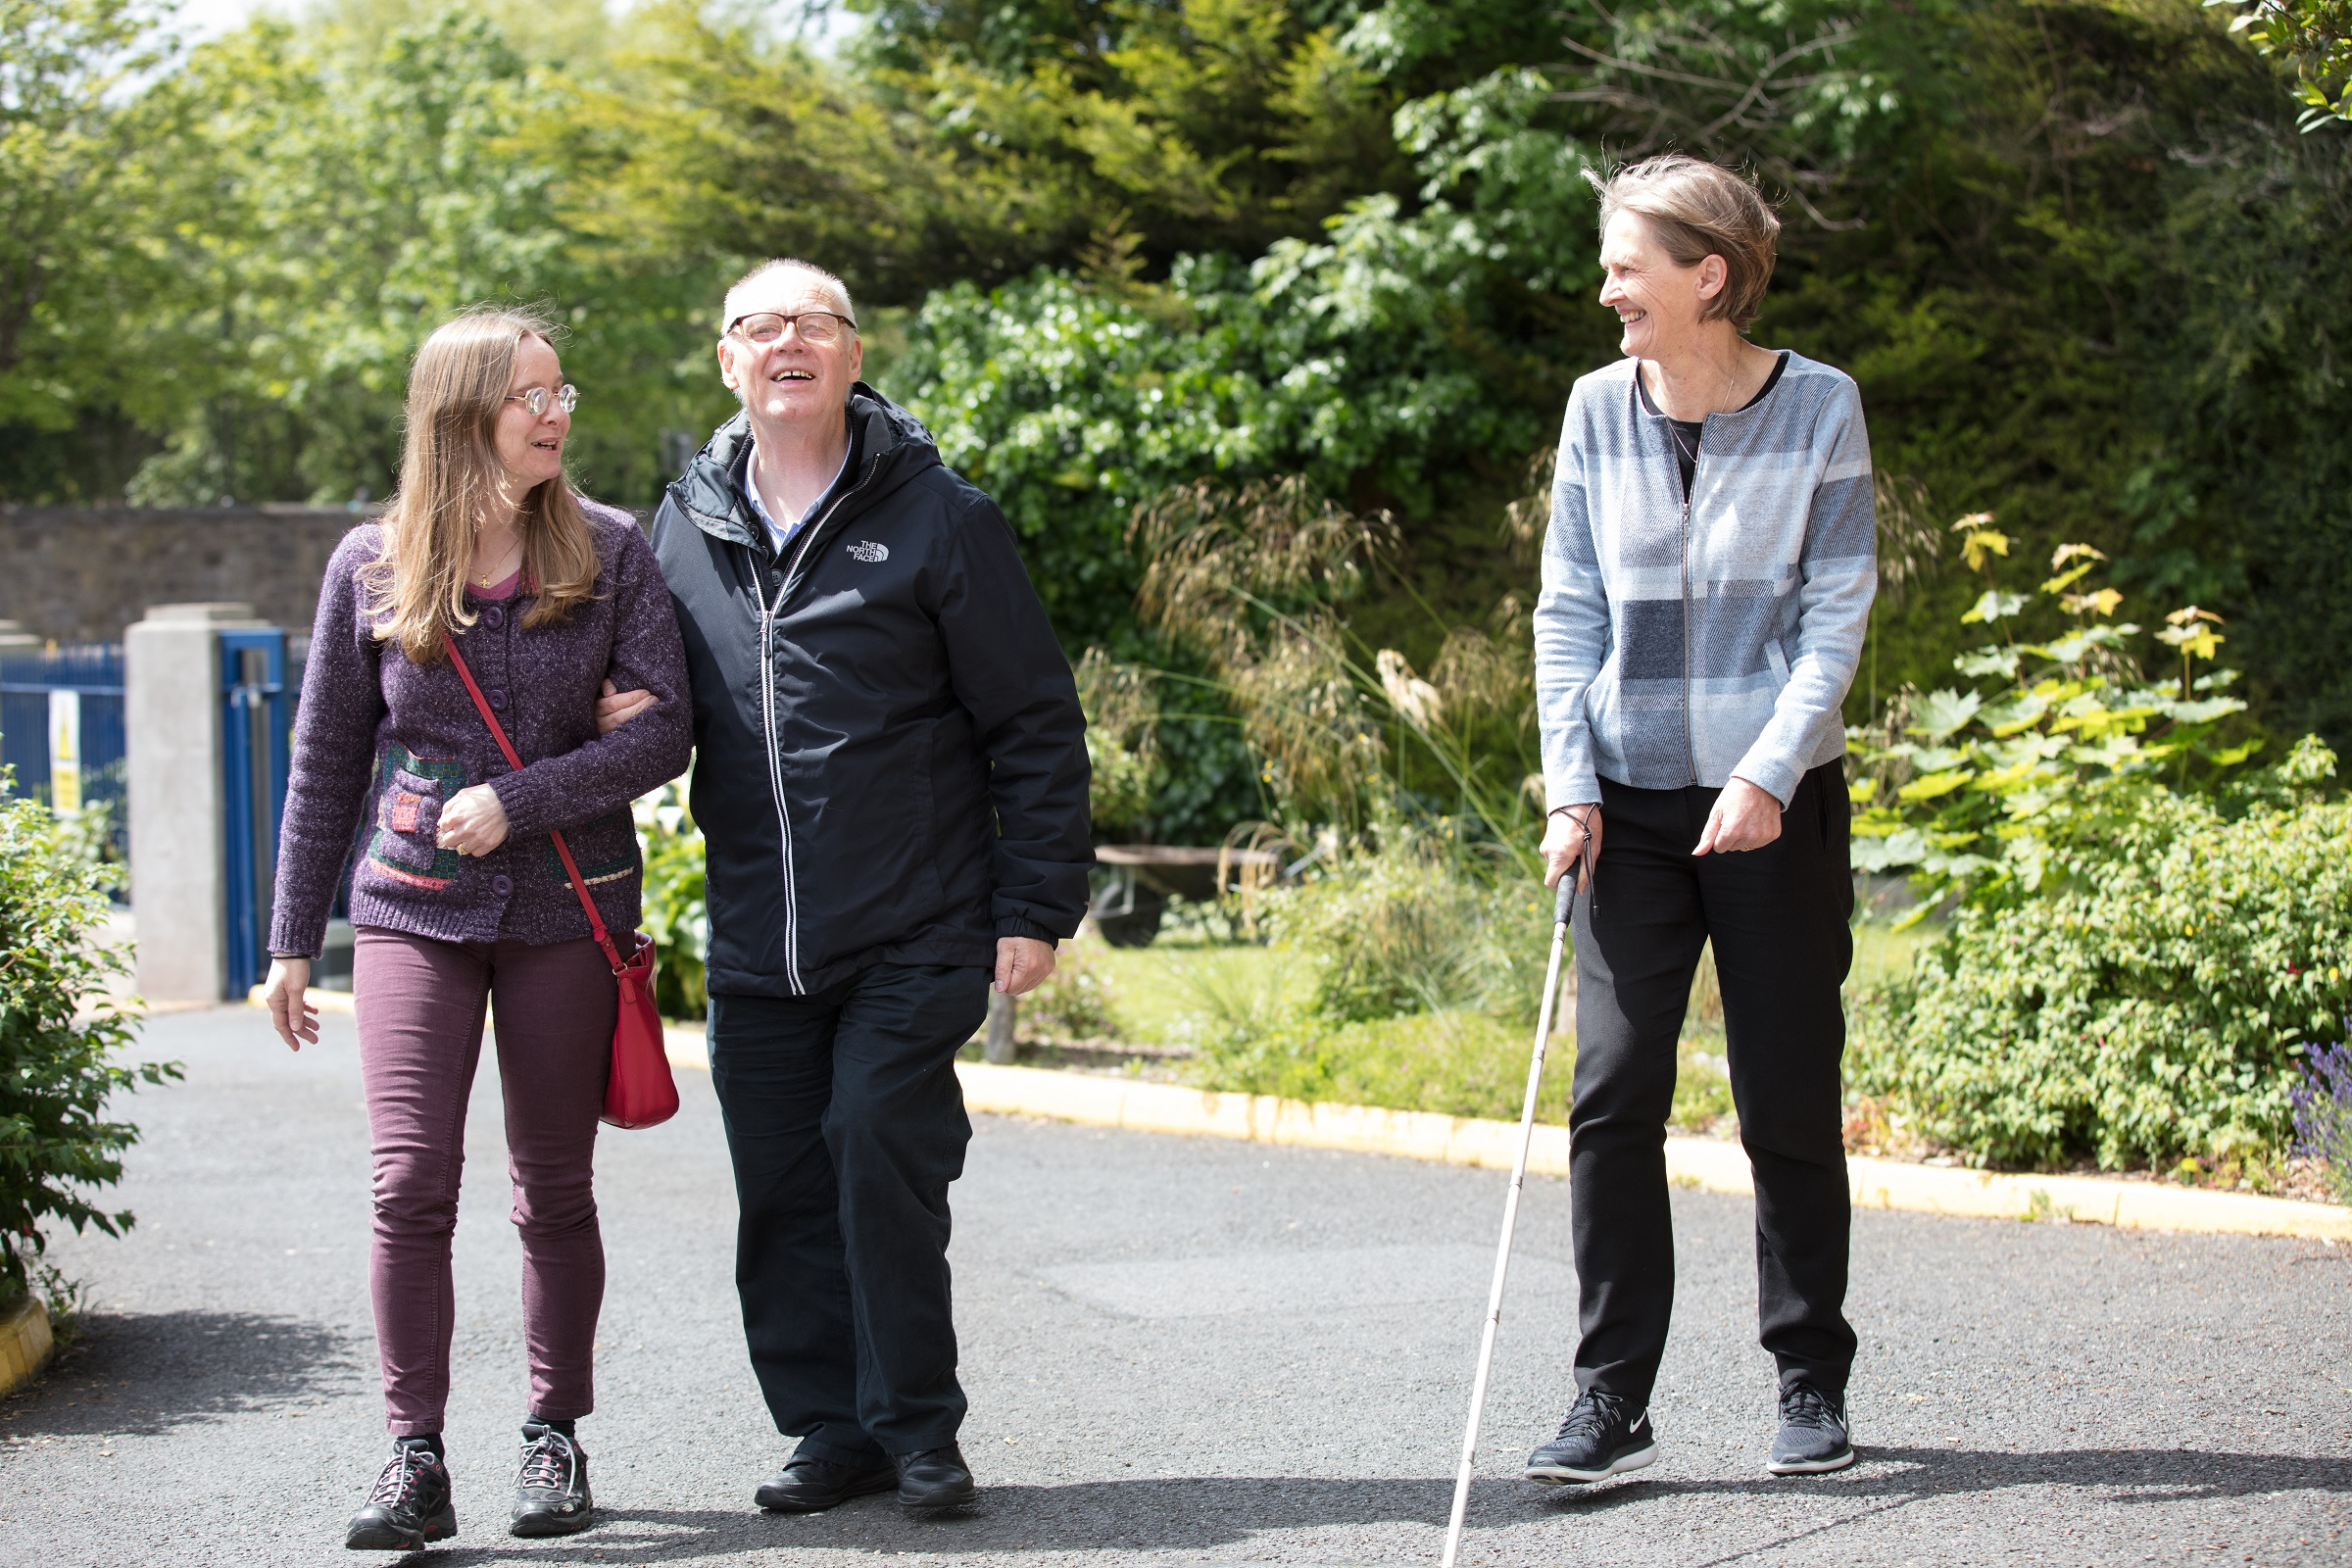 3 service users walking, one with a white cane